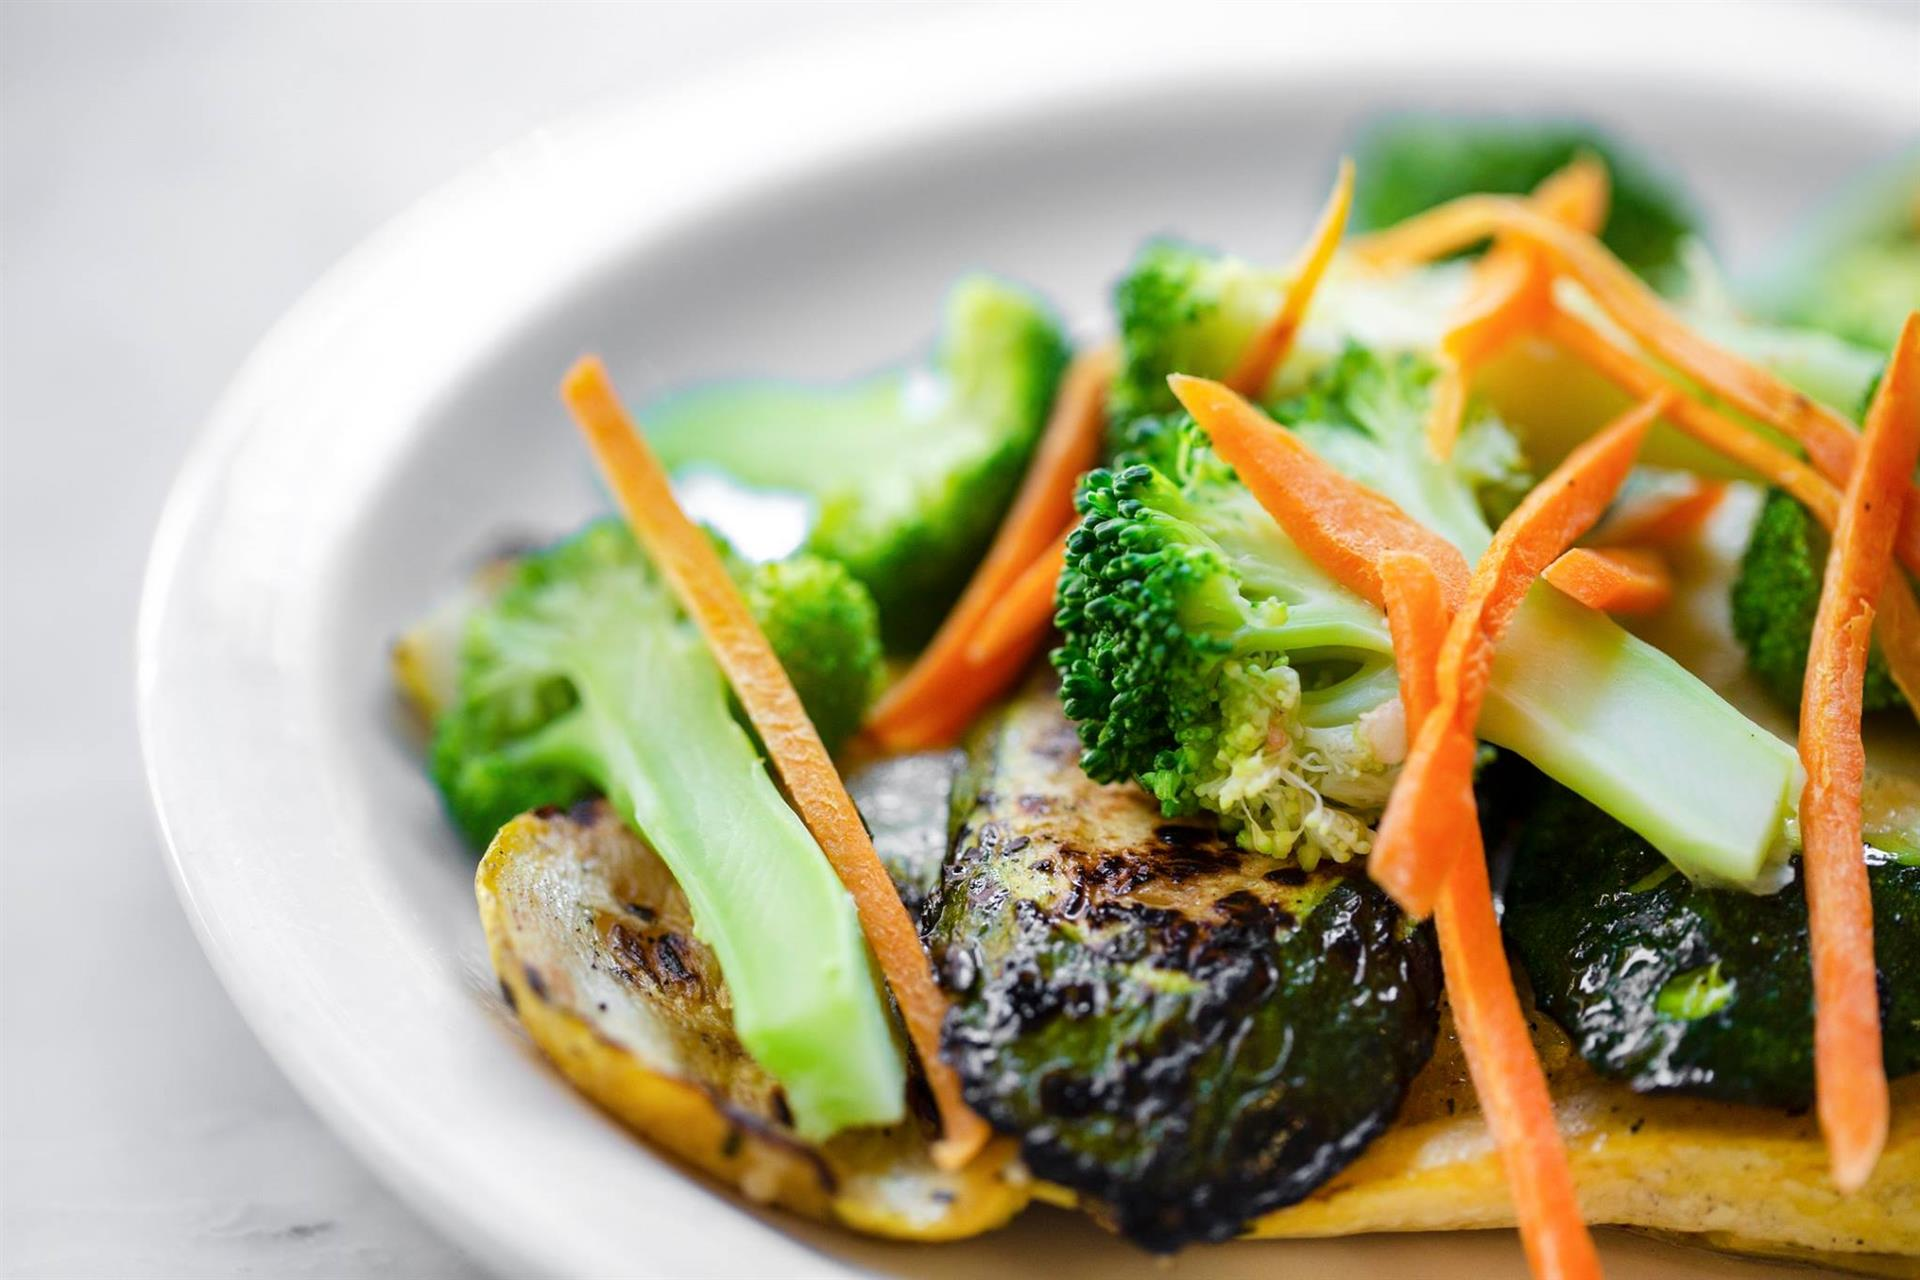 Plate of broccoli, brussel sprouts, and sliced carrots